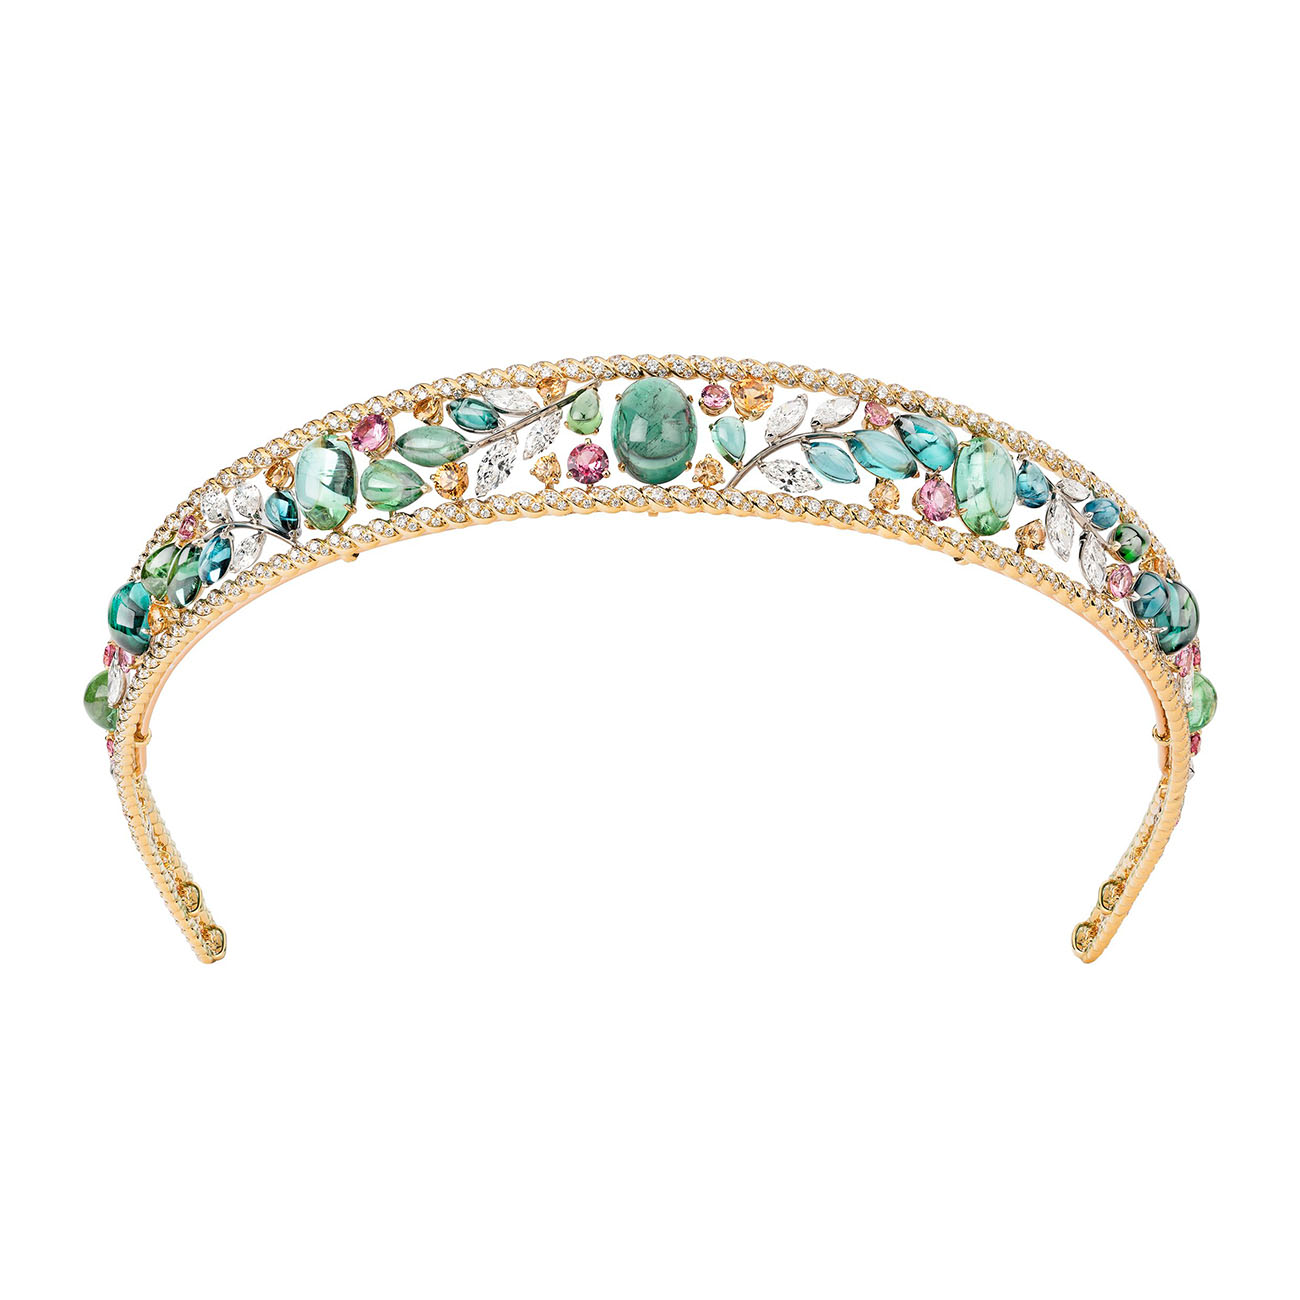 Chanel High Jewelry Collection LE PARIS RUSSE DE CHANEL Blé Maria tiara